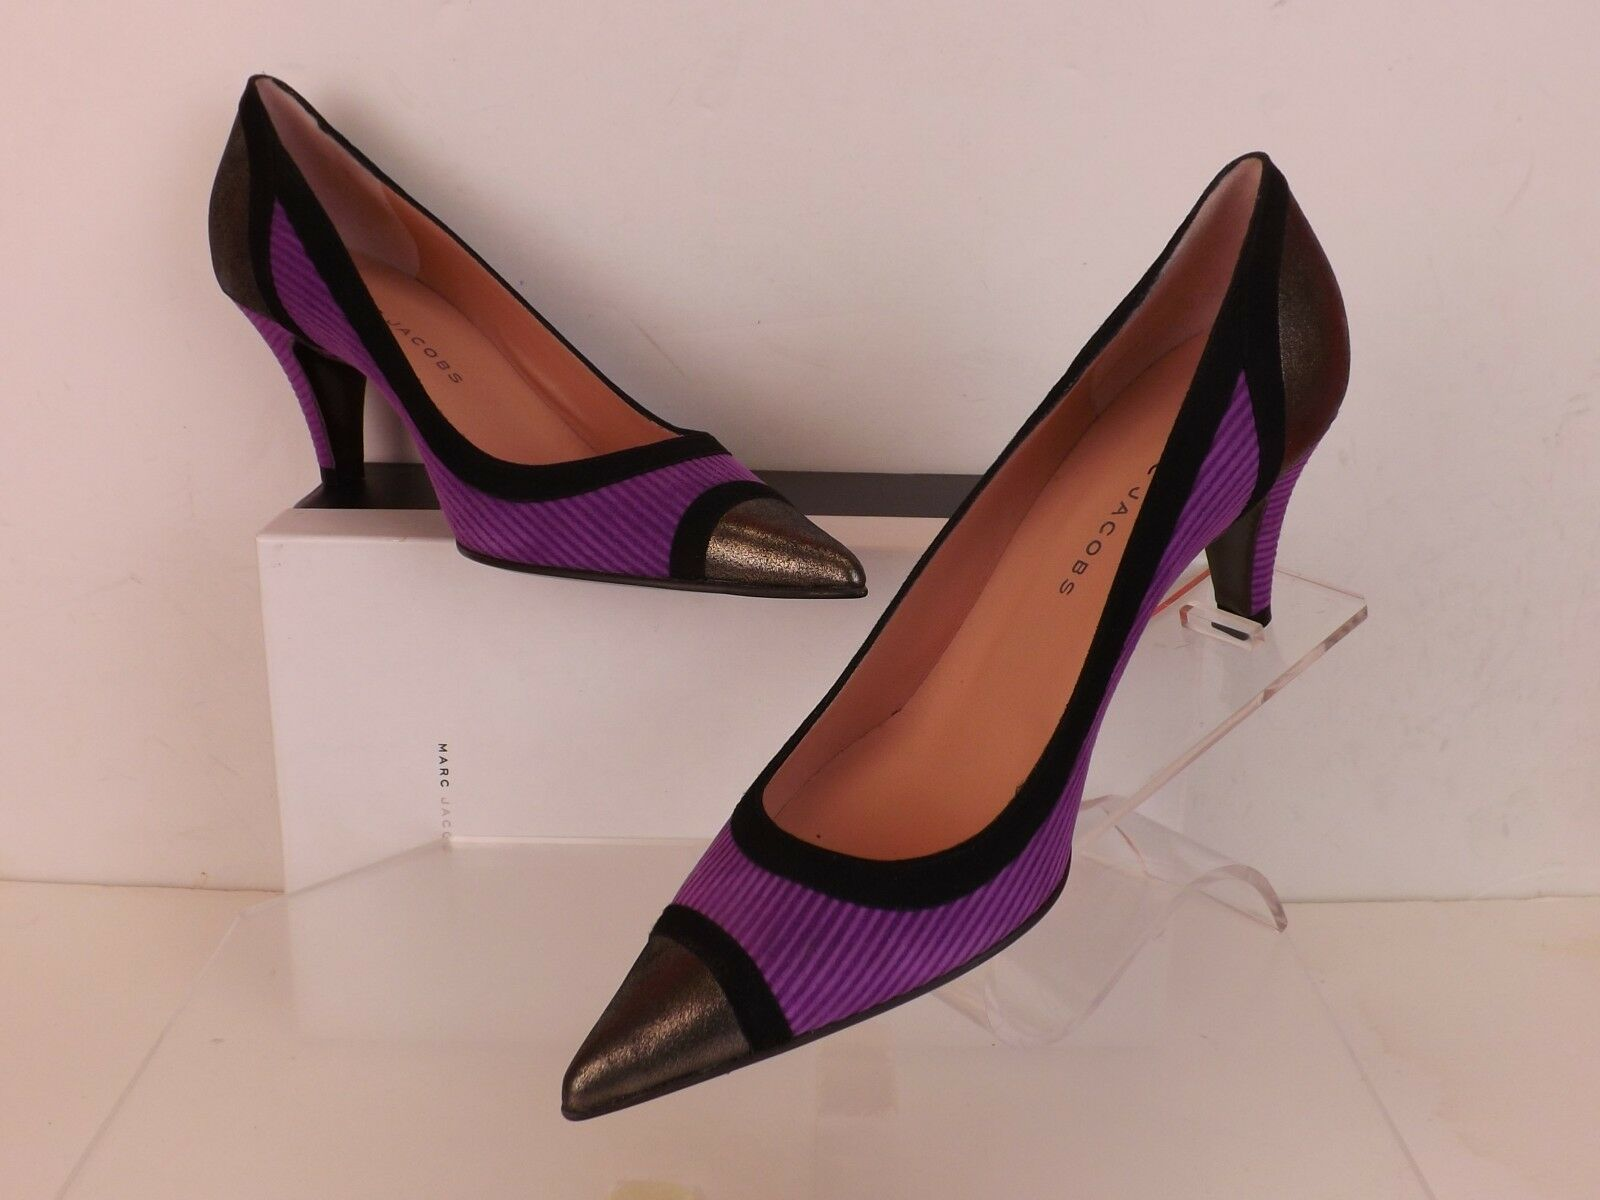 NIB MARC JACOBS MULTI-COLOR SUEDE POINTED TOE LOW HEEL PUMPS 38.5 ITALY